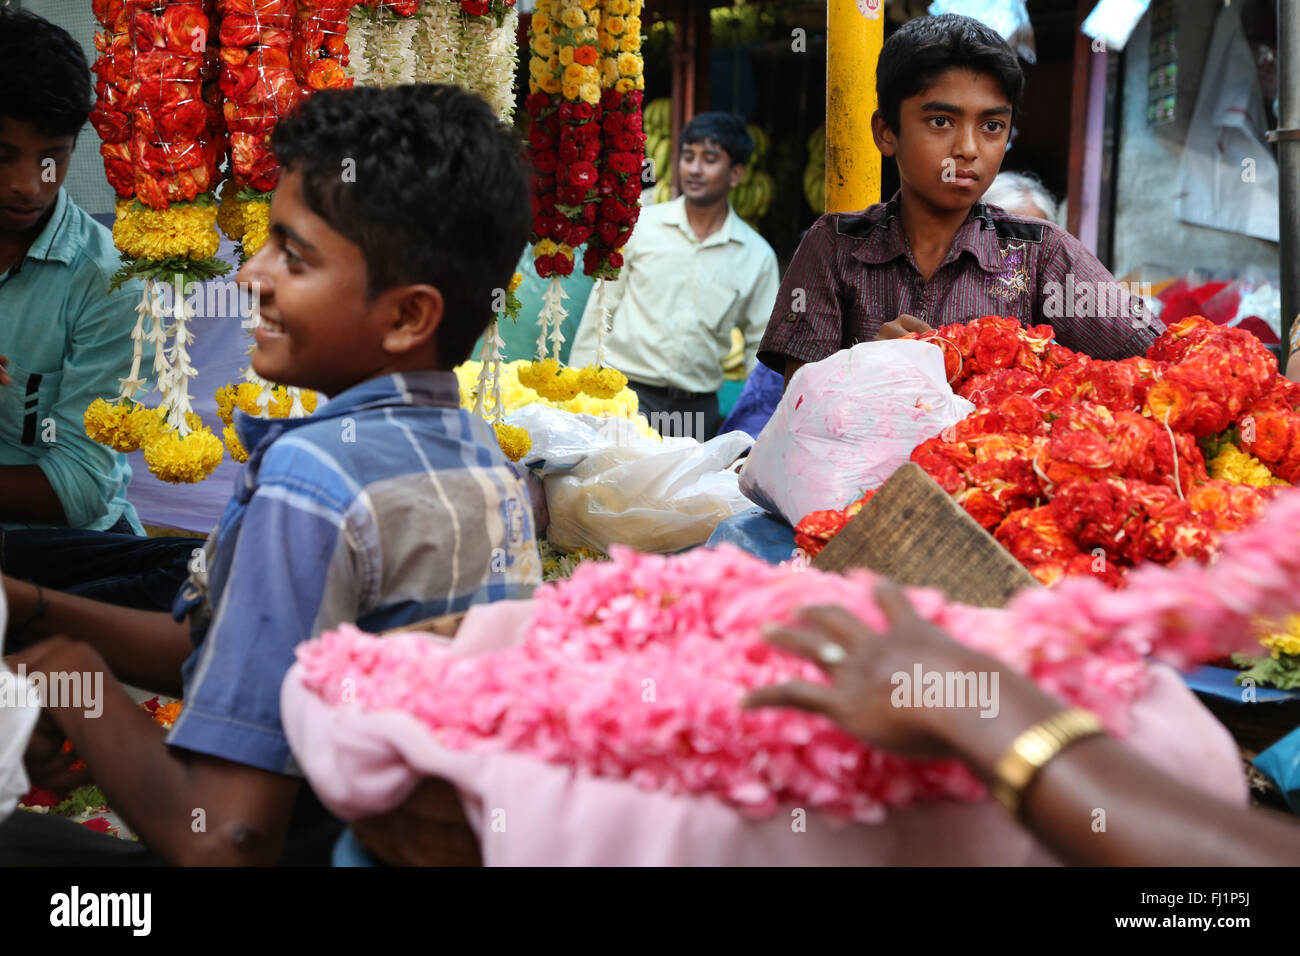 Young guys selling flowers at Devaraja Market, Mysore - Stock Image